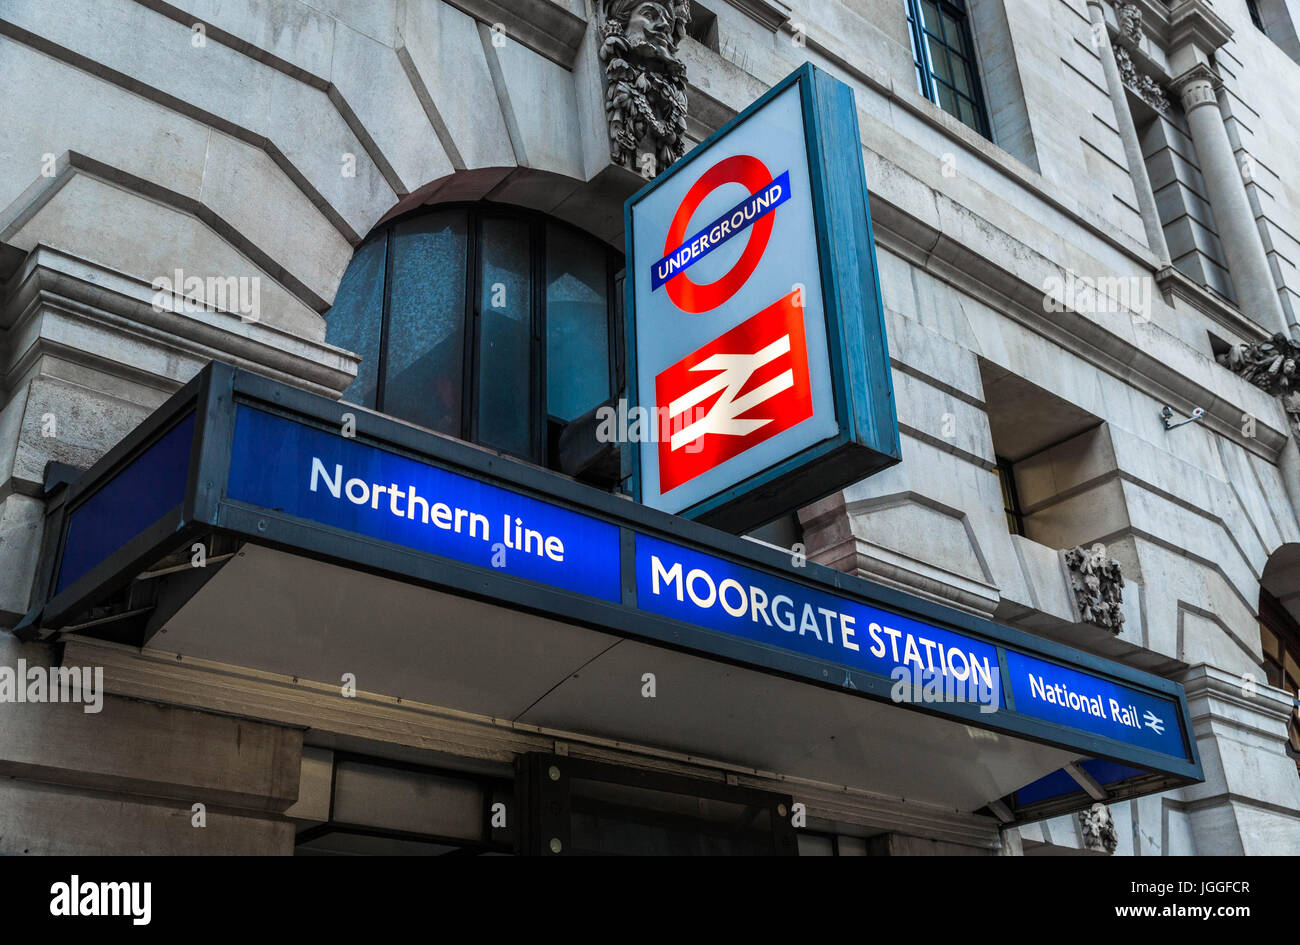 Low angle view of a Moorgate Station sign, London, England, UK. - Stock Image